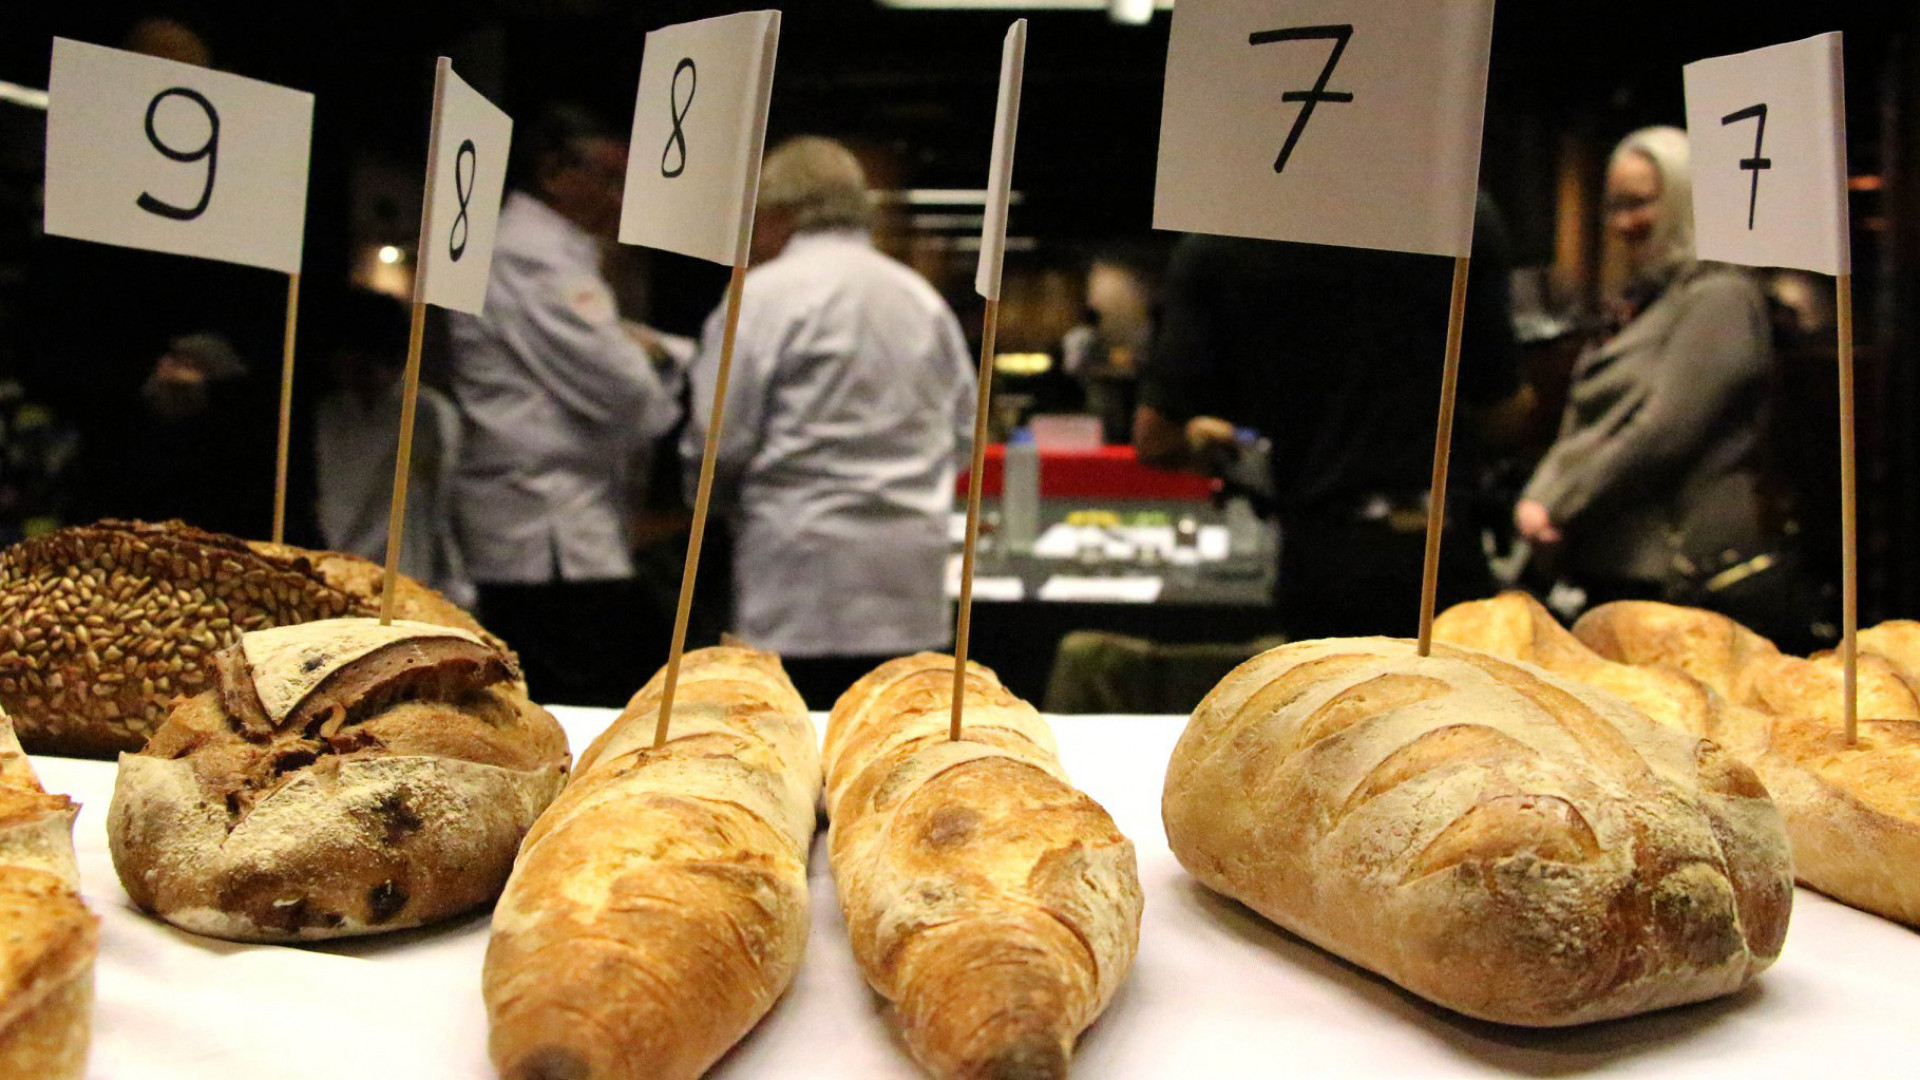 Best Baguette competition at HUCKSTER